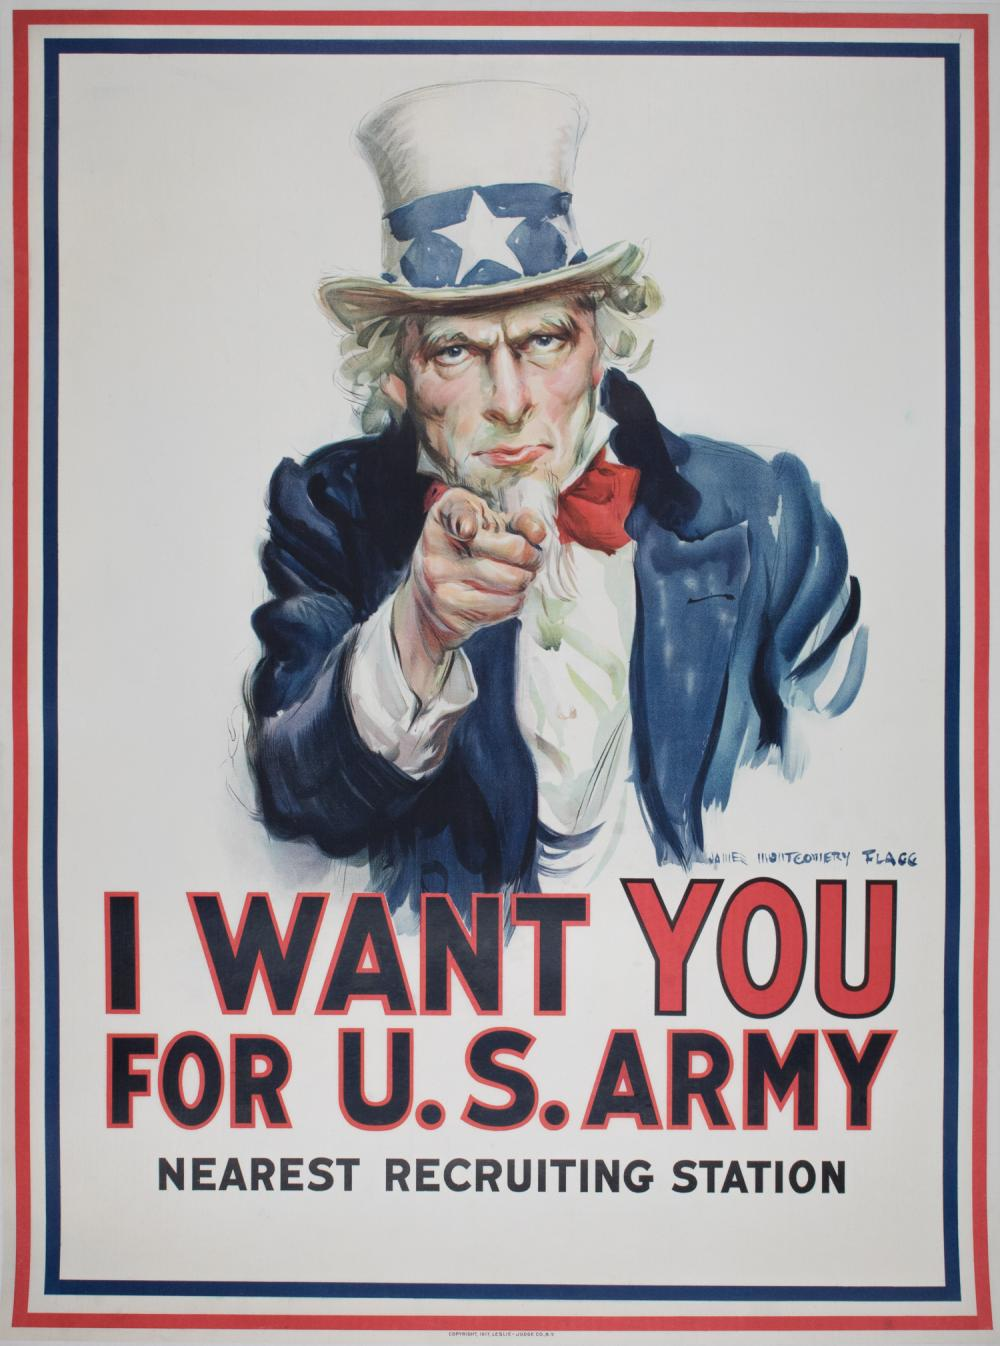 FIRST ISSUE OF FLAGG'S 'I WANT YOU' POSTER